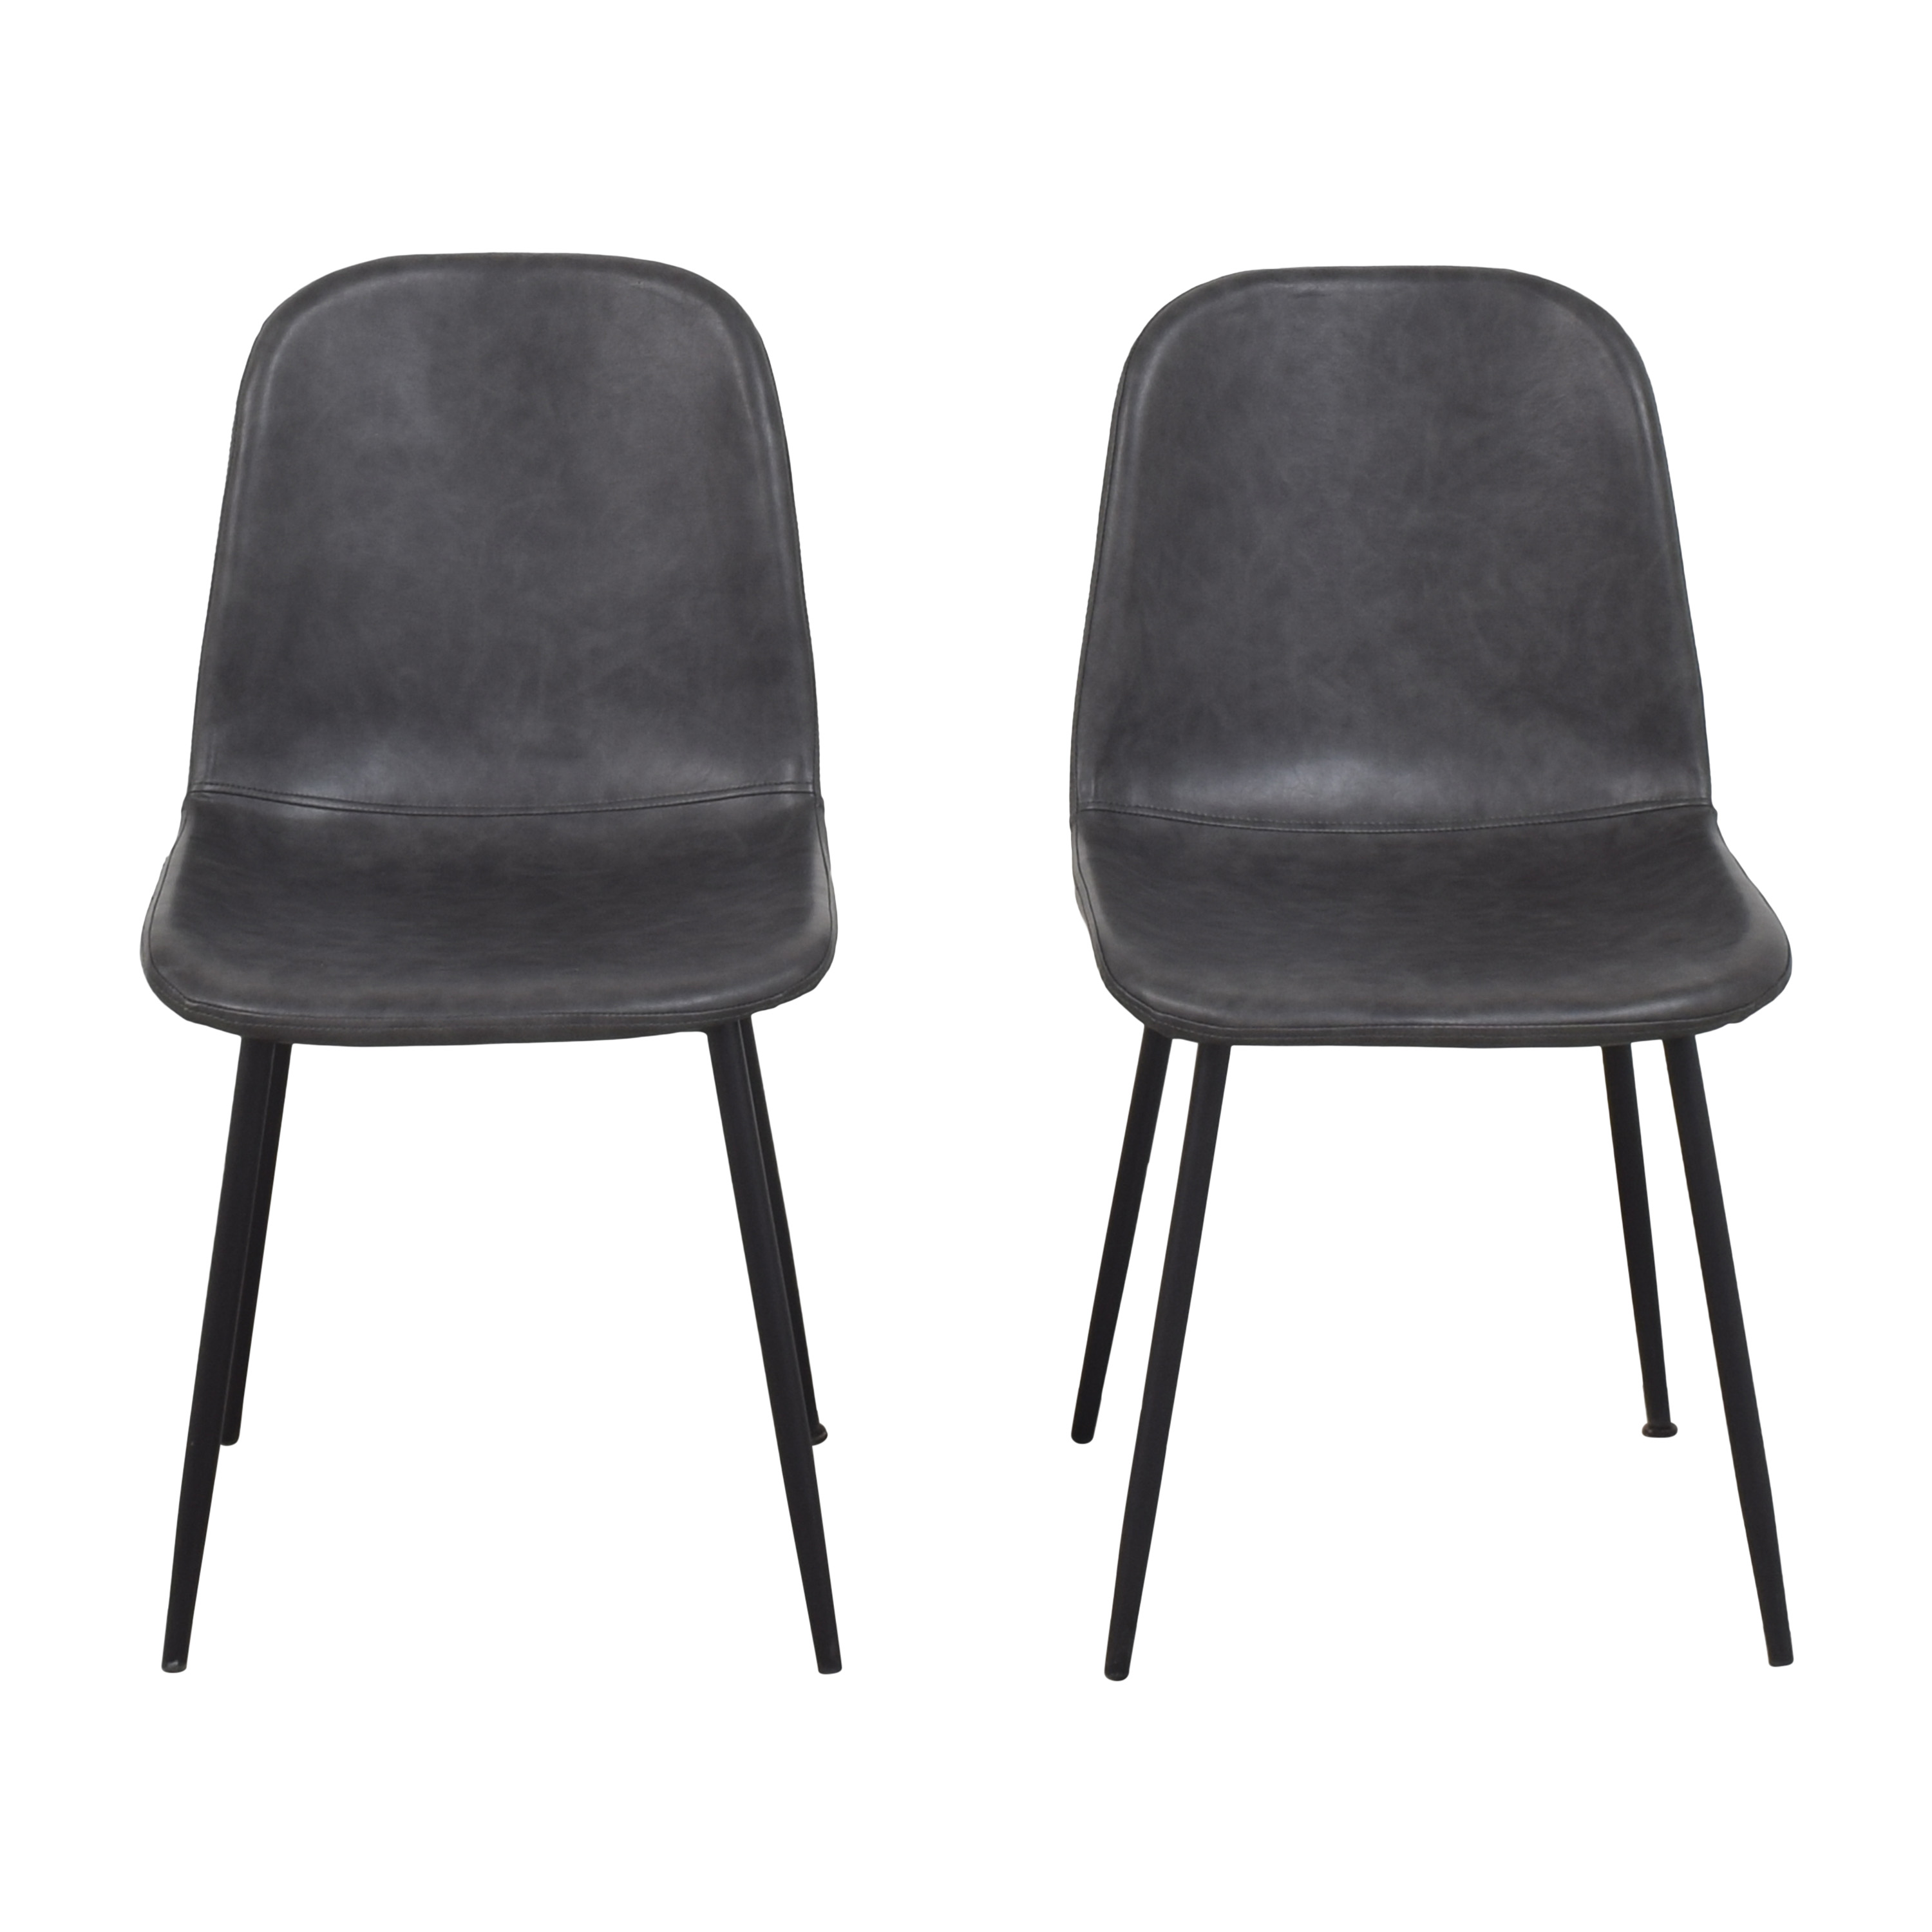 Mid-Century Modern Style Dining Chairs pa